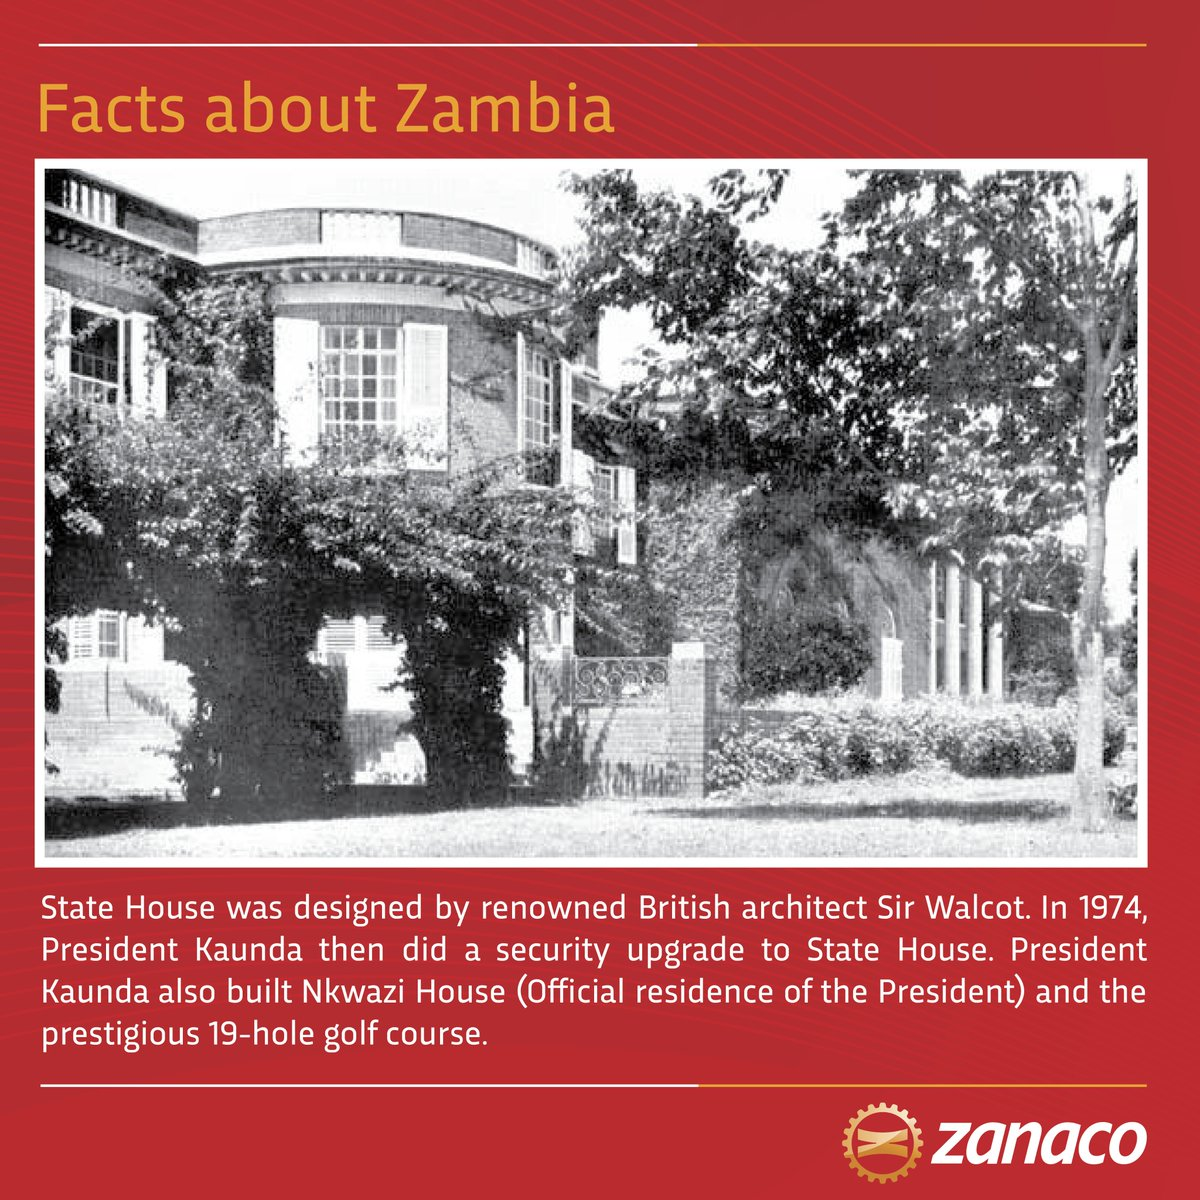 Bank Of Zambia Home Zanaco Bank On Twitter